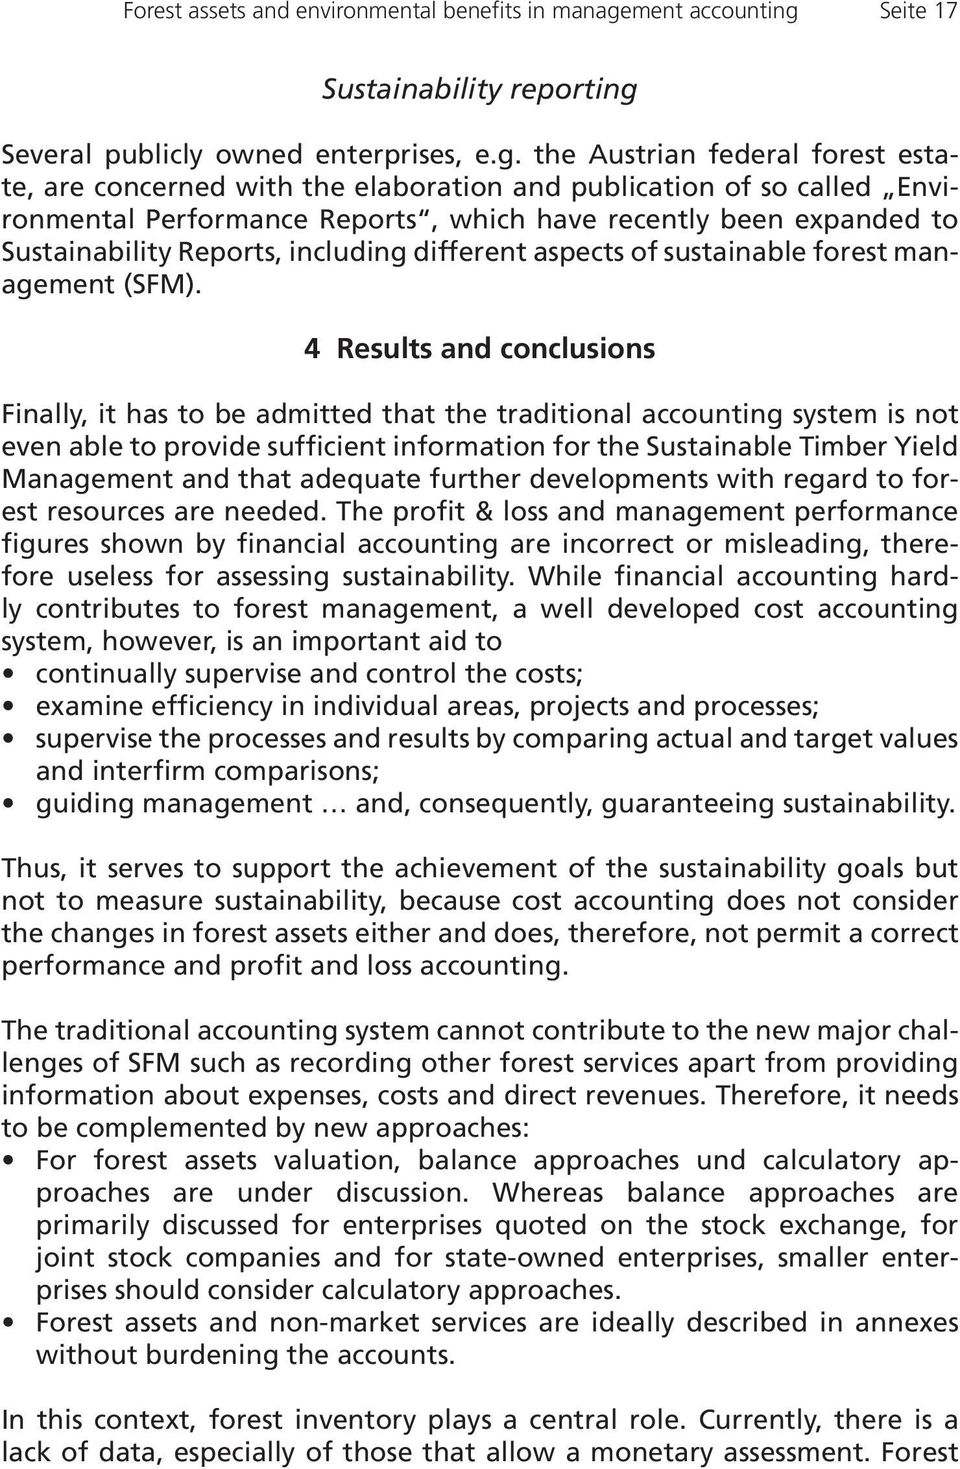 Seite 17 Sustainability reporting